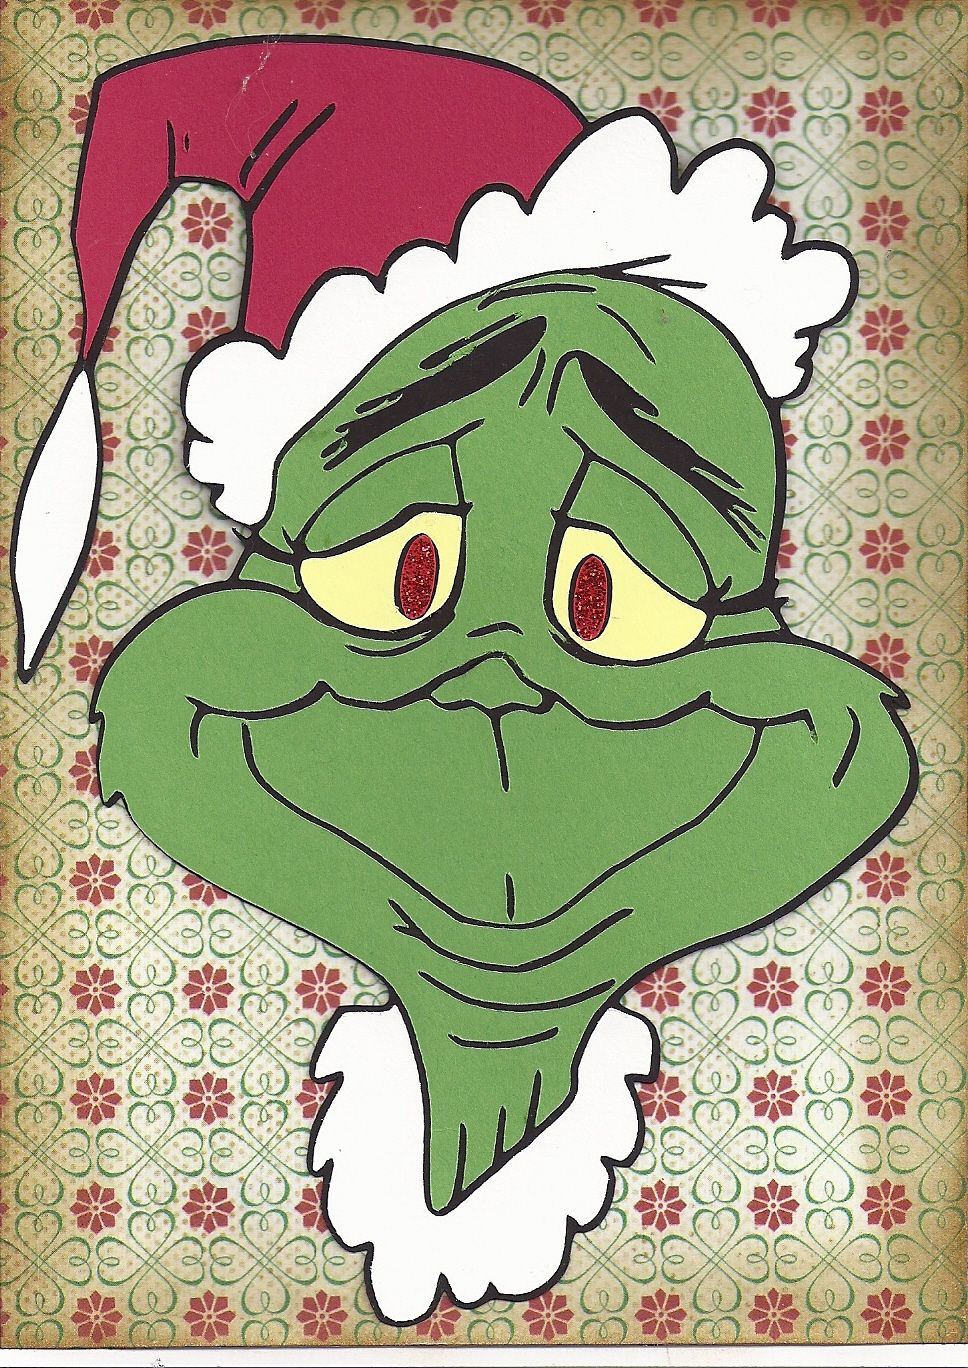 the grinch christmas card. Made from tracing a coloring book page ...